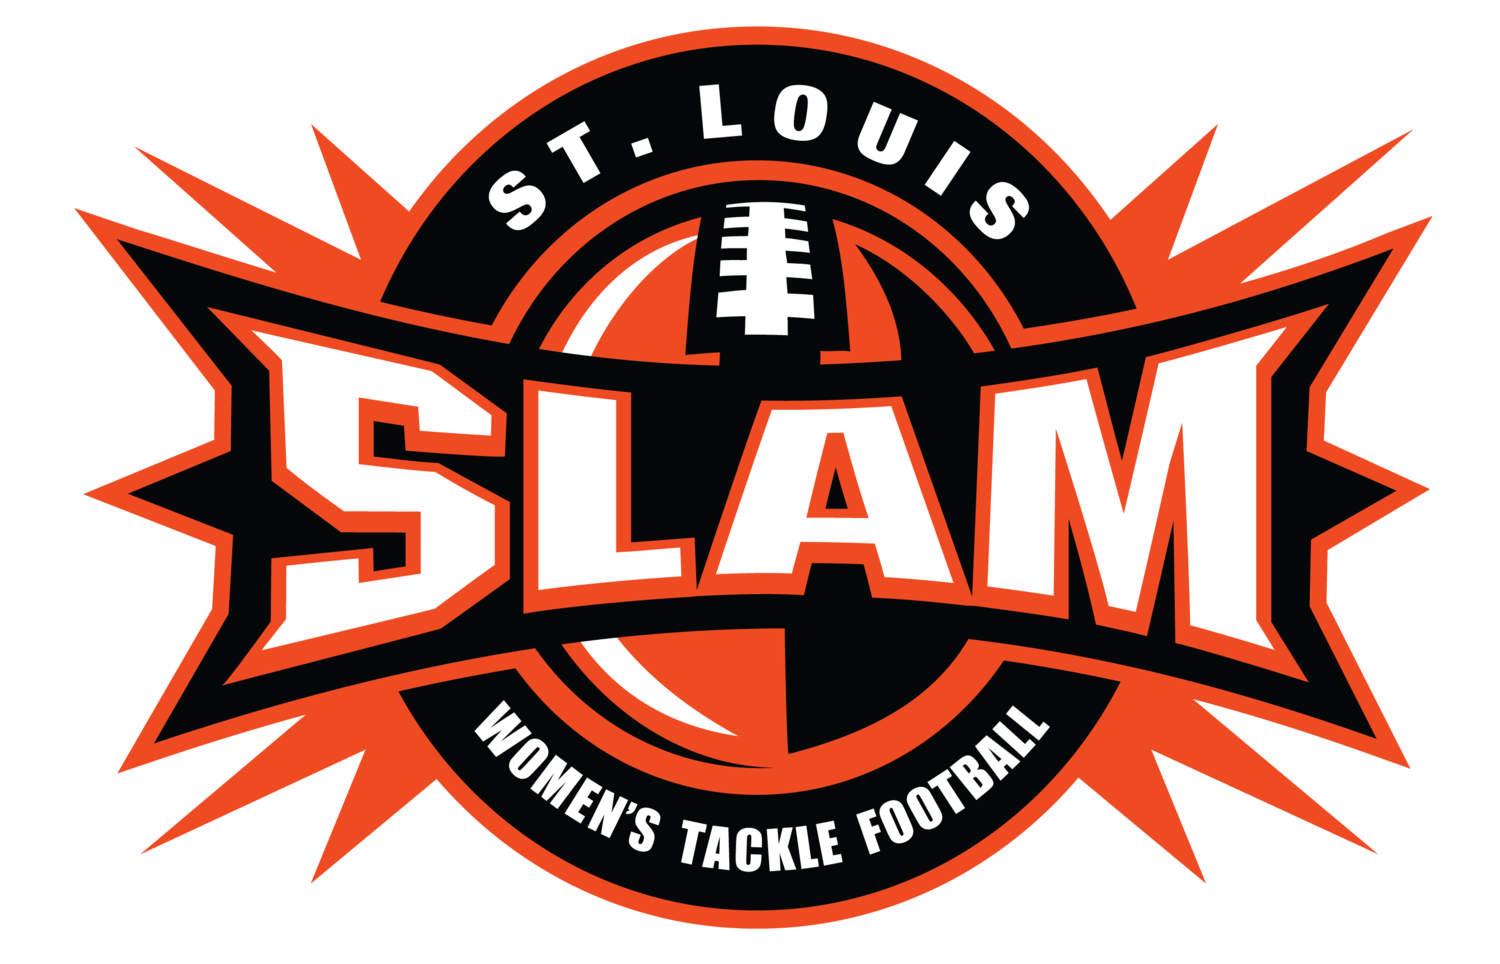 official website of the st louis slam women s football